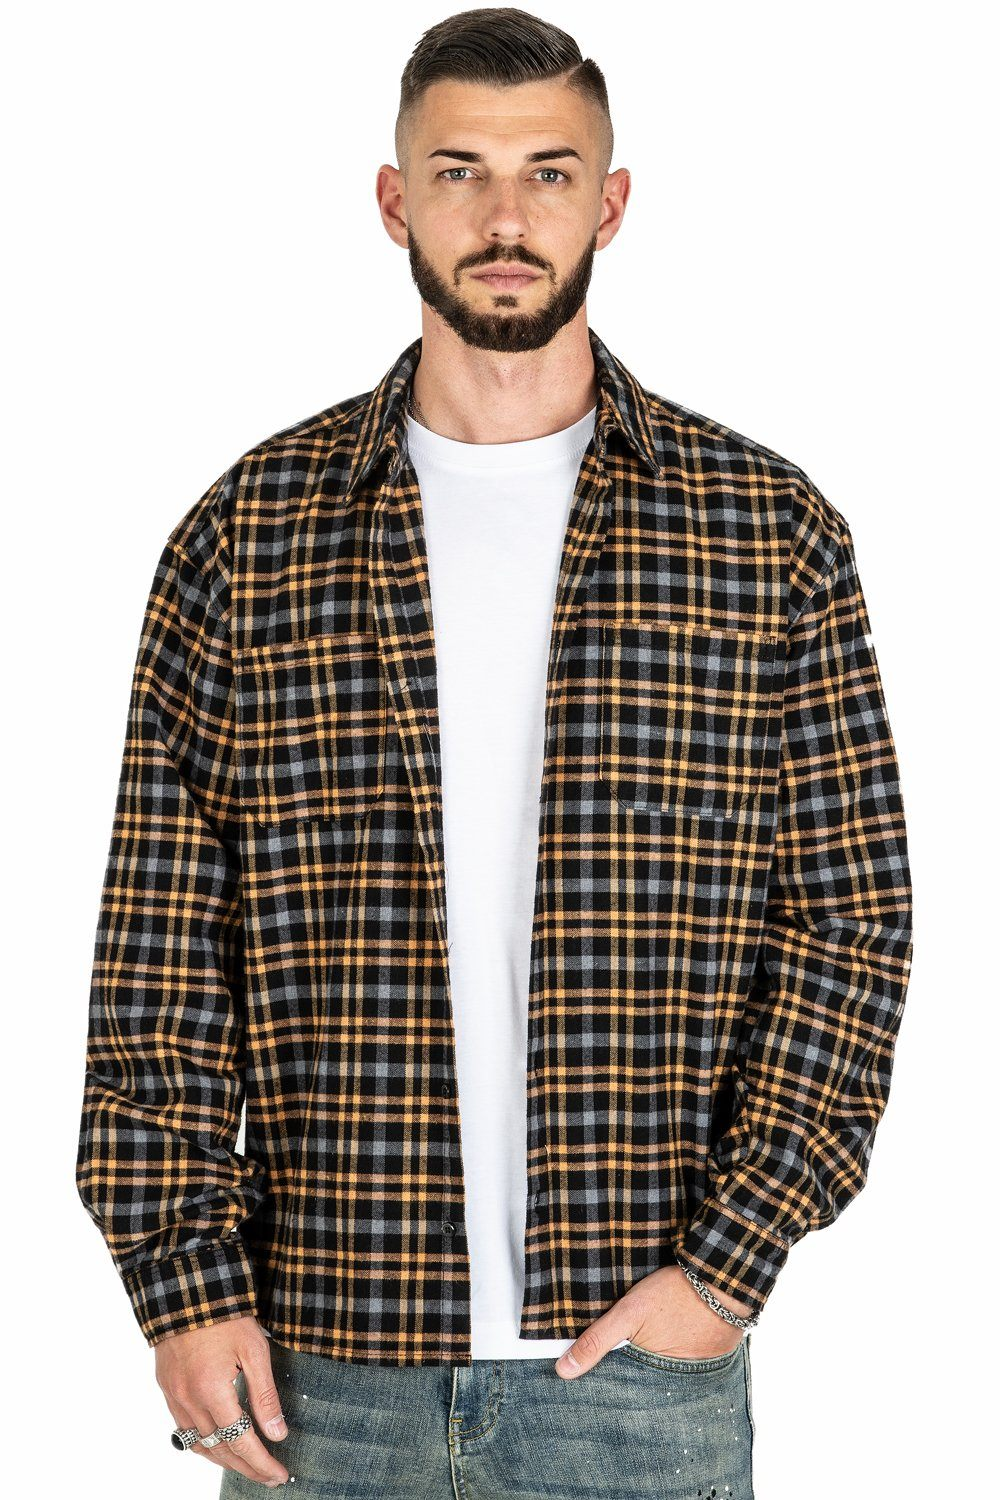 Fio Flannel Shirt Black Beige SHIRT PEGADOR